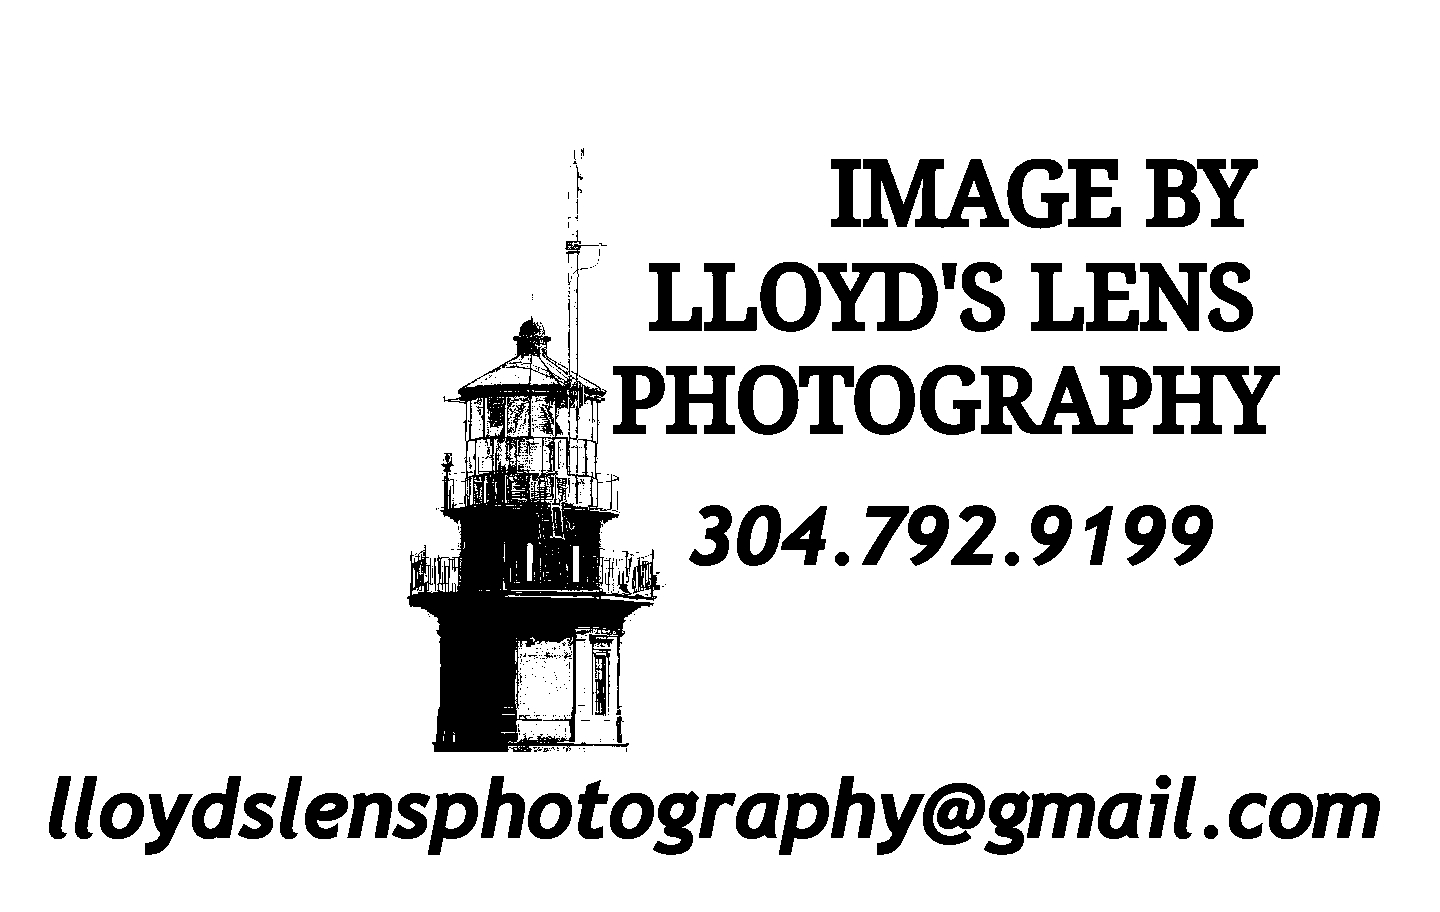 LLOYD'S LENS PHOTOGRAPHY LLC